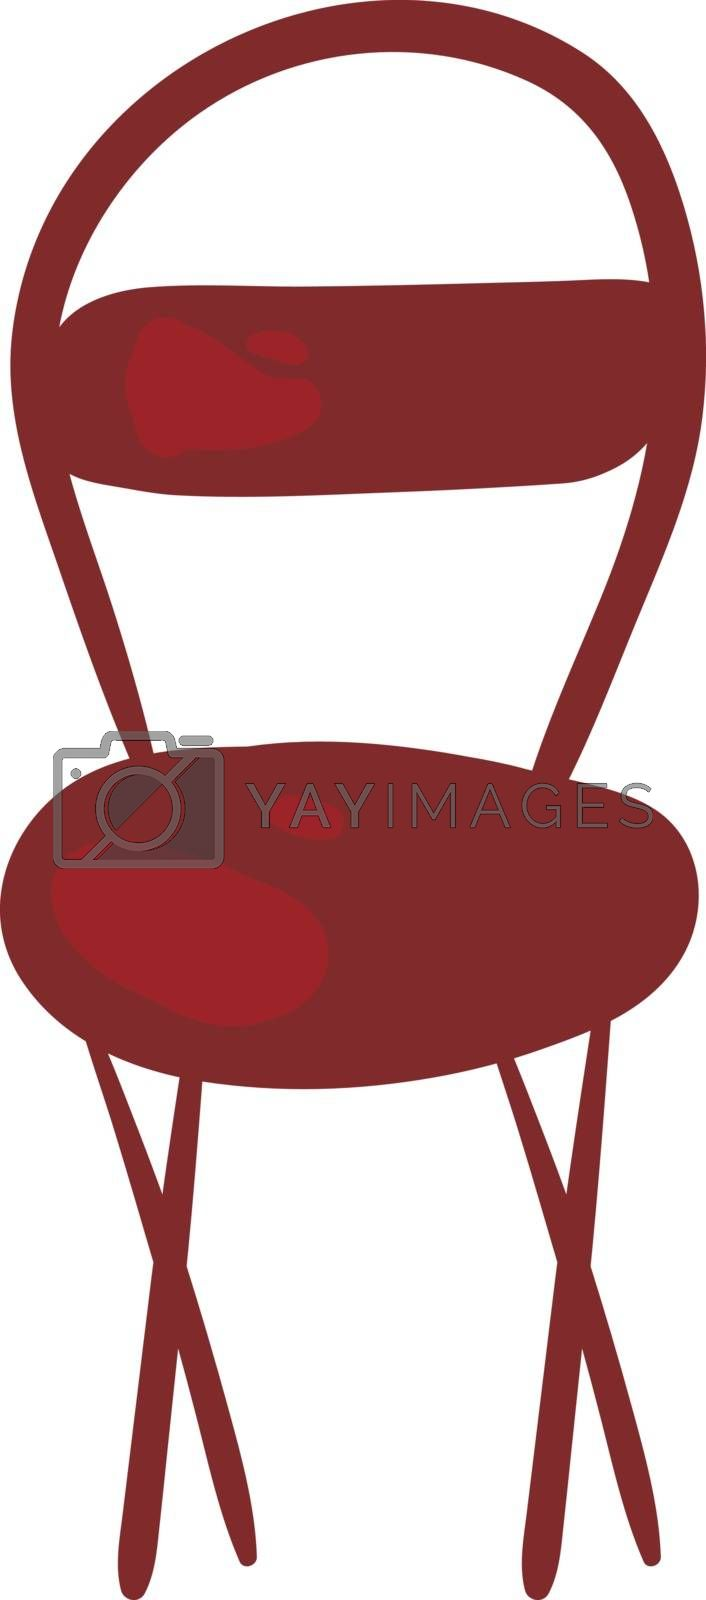 Royalty free image of Clipart of a red-colored chair vector or color illustration by Morphart